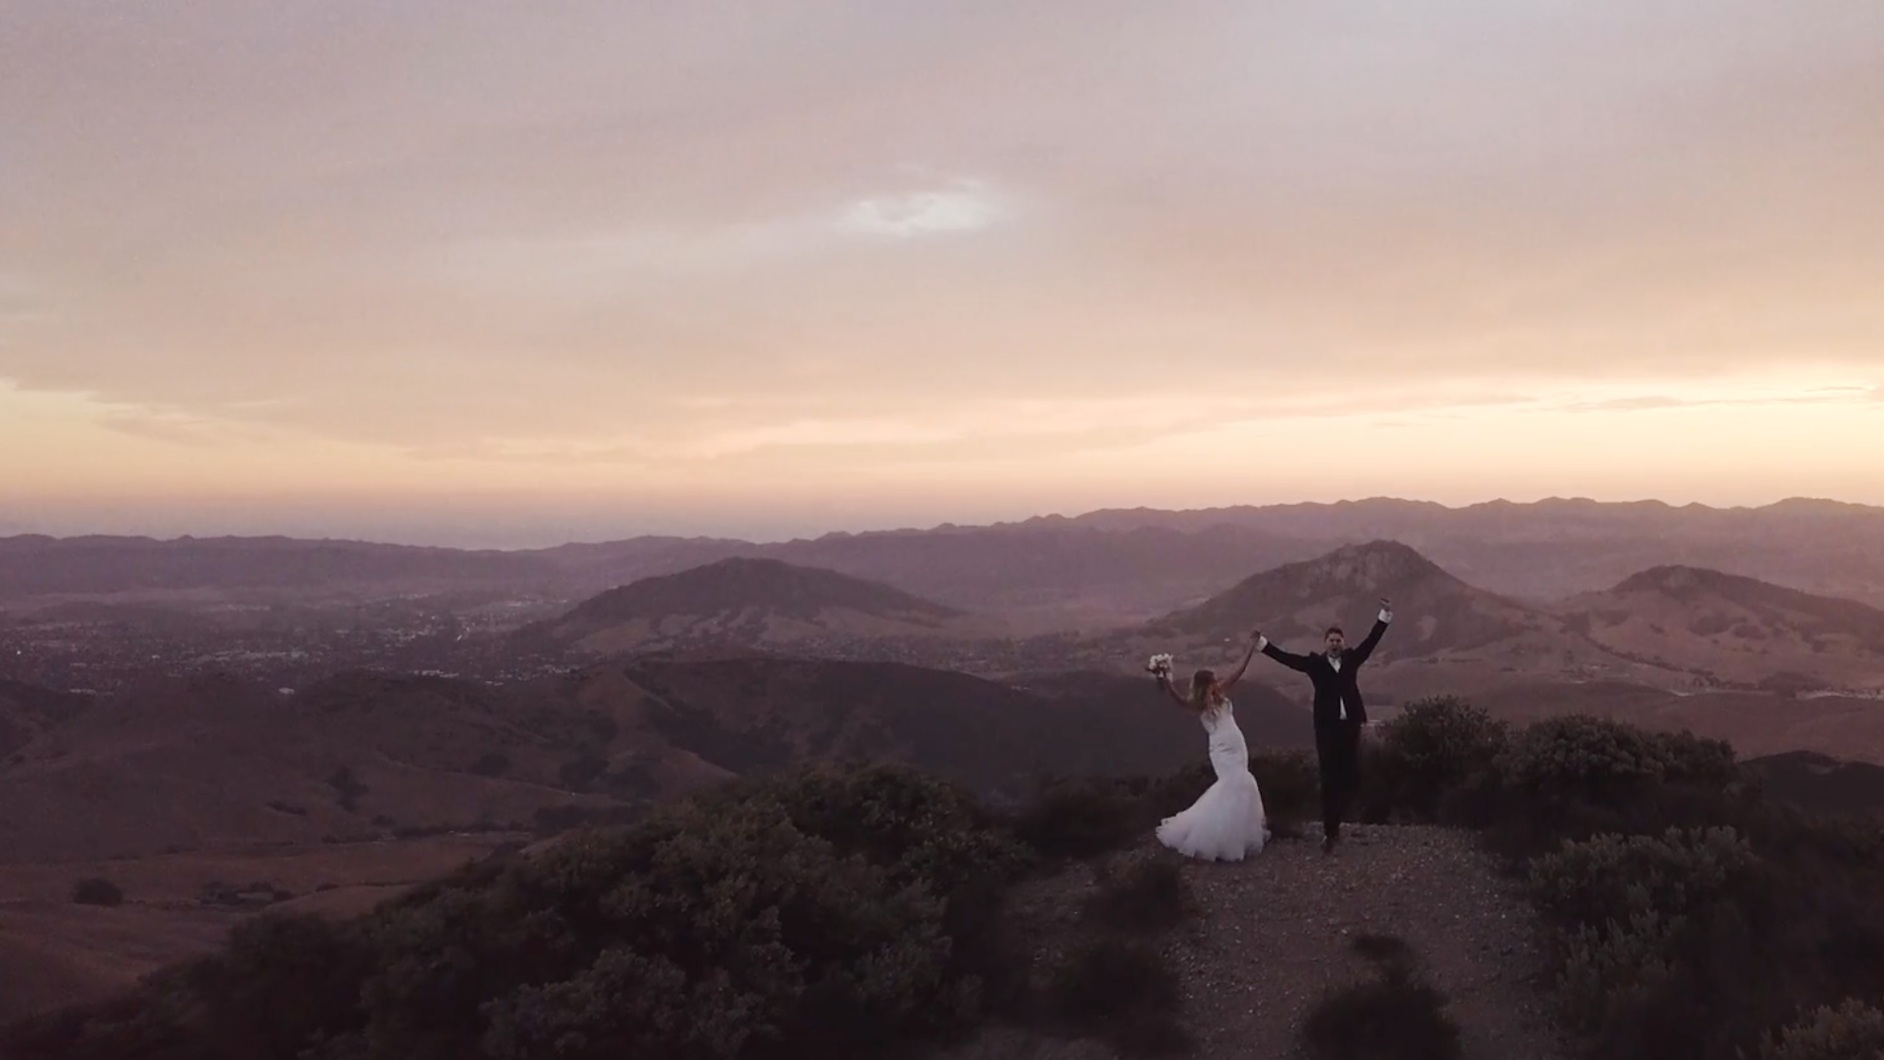 Allison & Stephen - paso Robles, california―9 years in the making & a whole lotta joy.